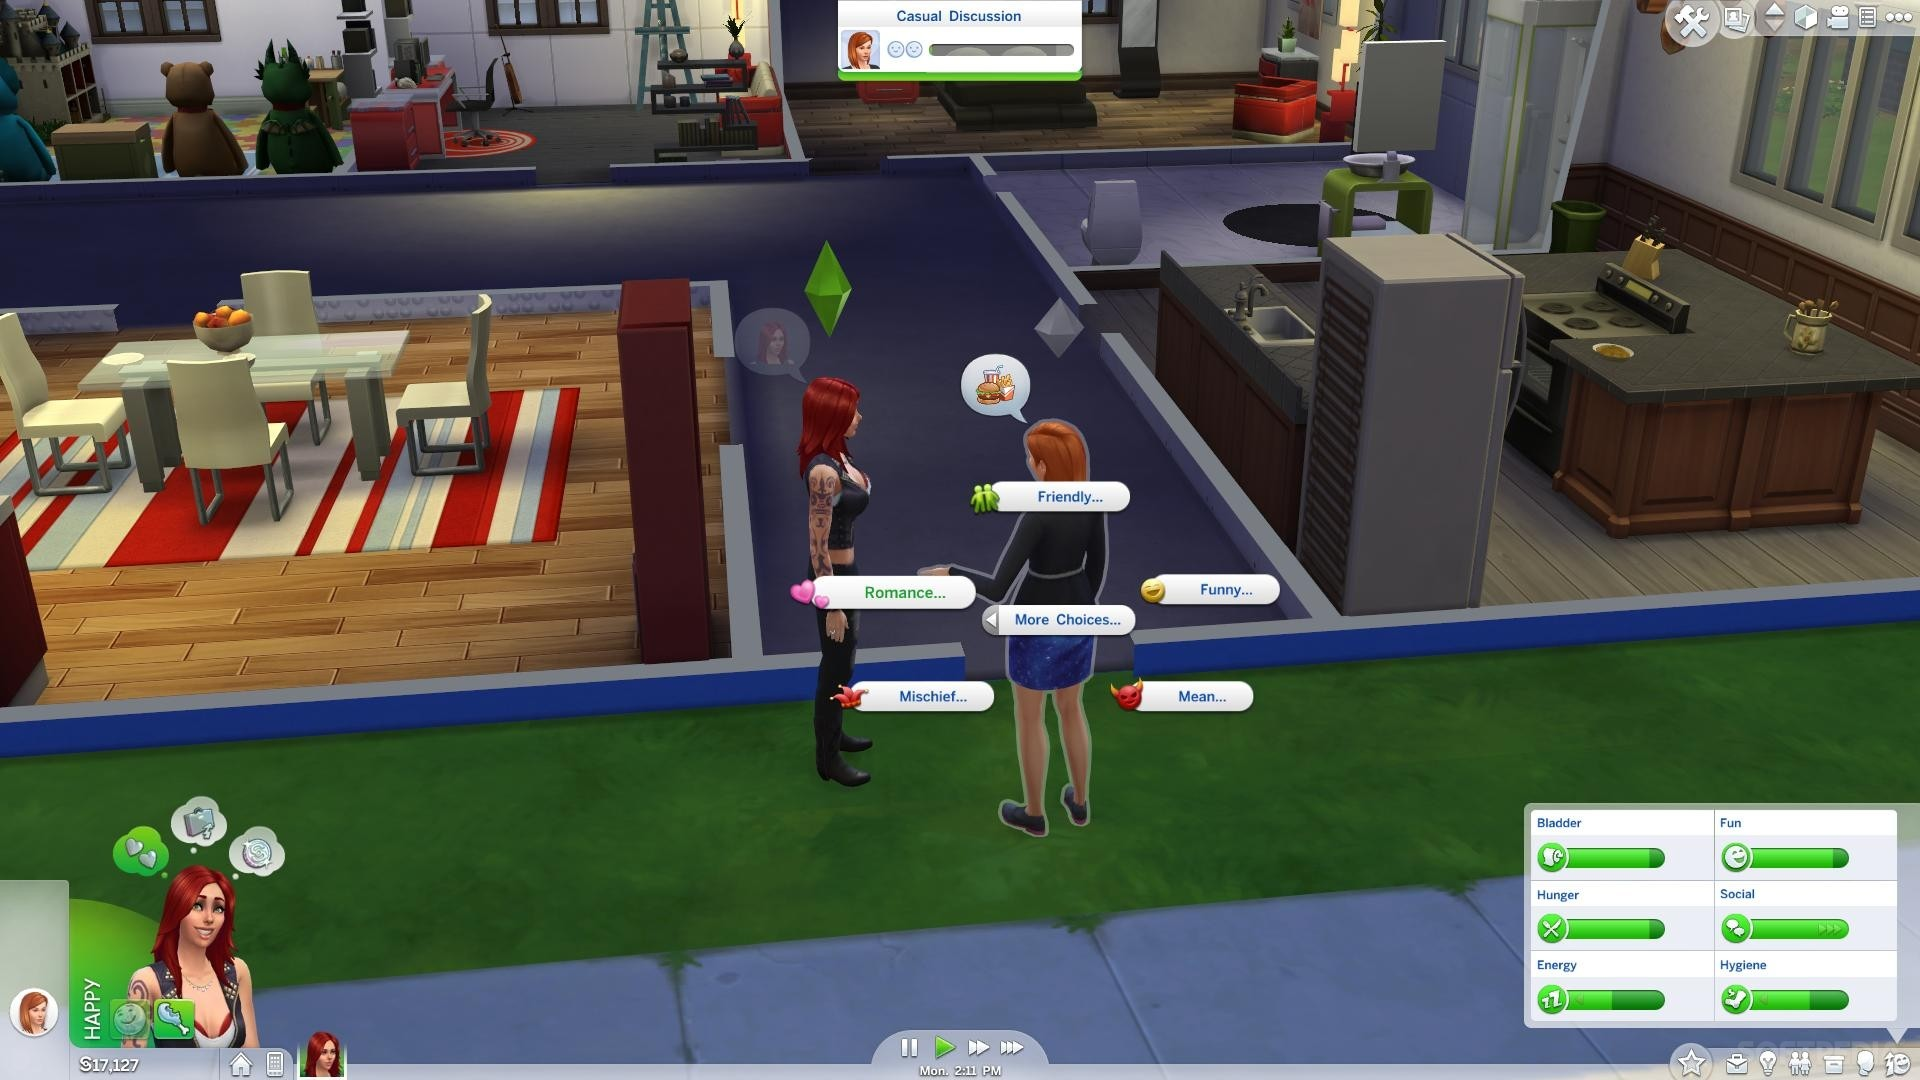 Sims Online Multiplayer The Sims 4 Is Free To Download And Play On Pc For 48 Hours